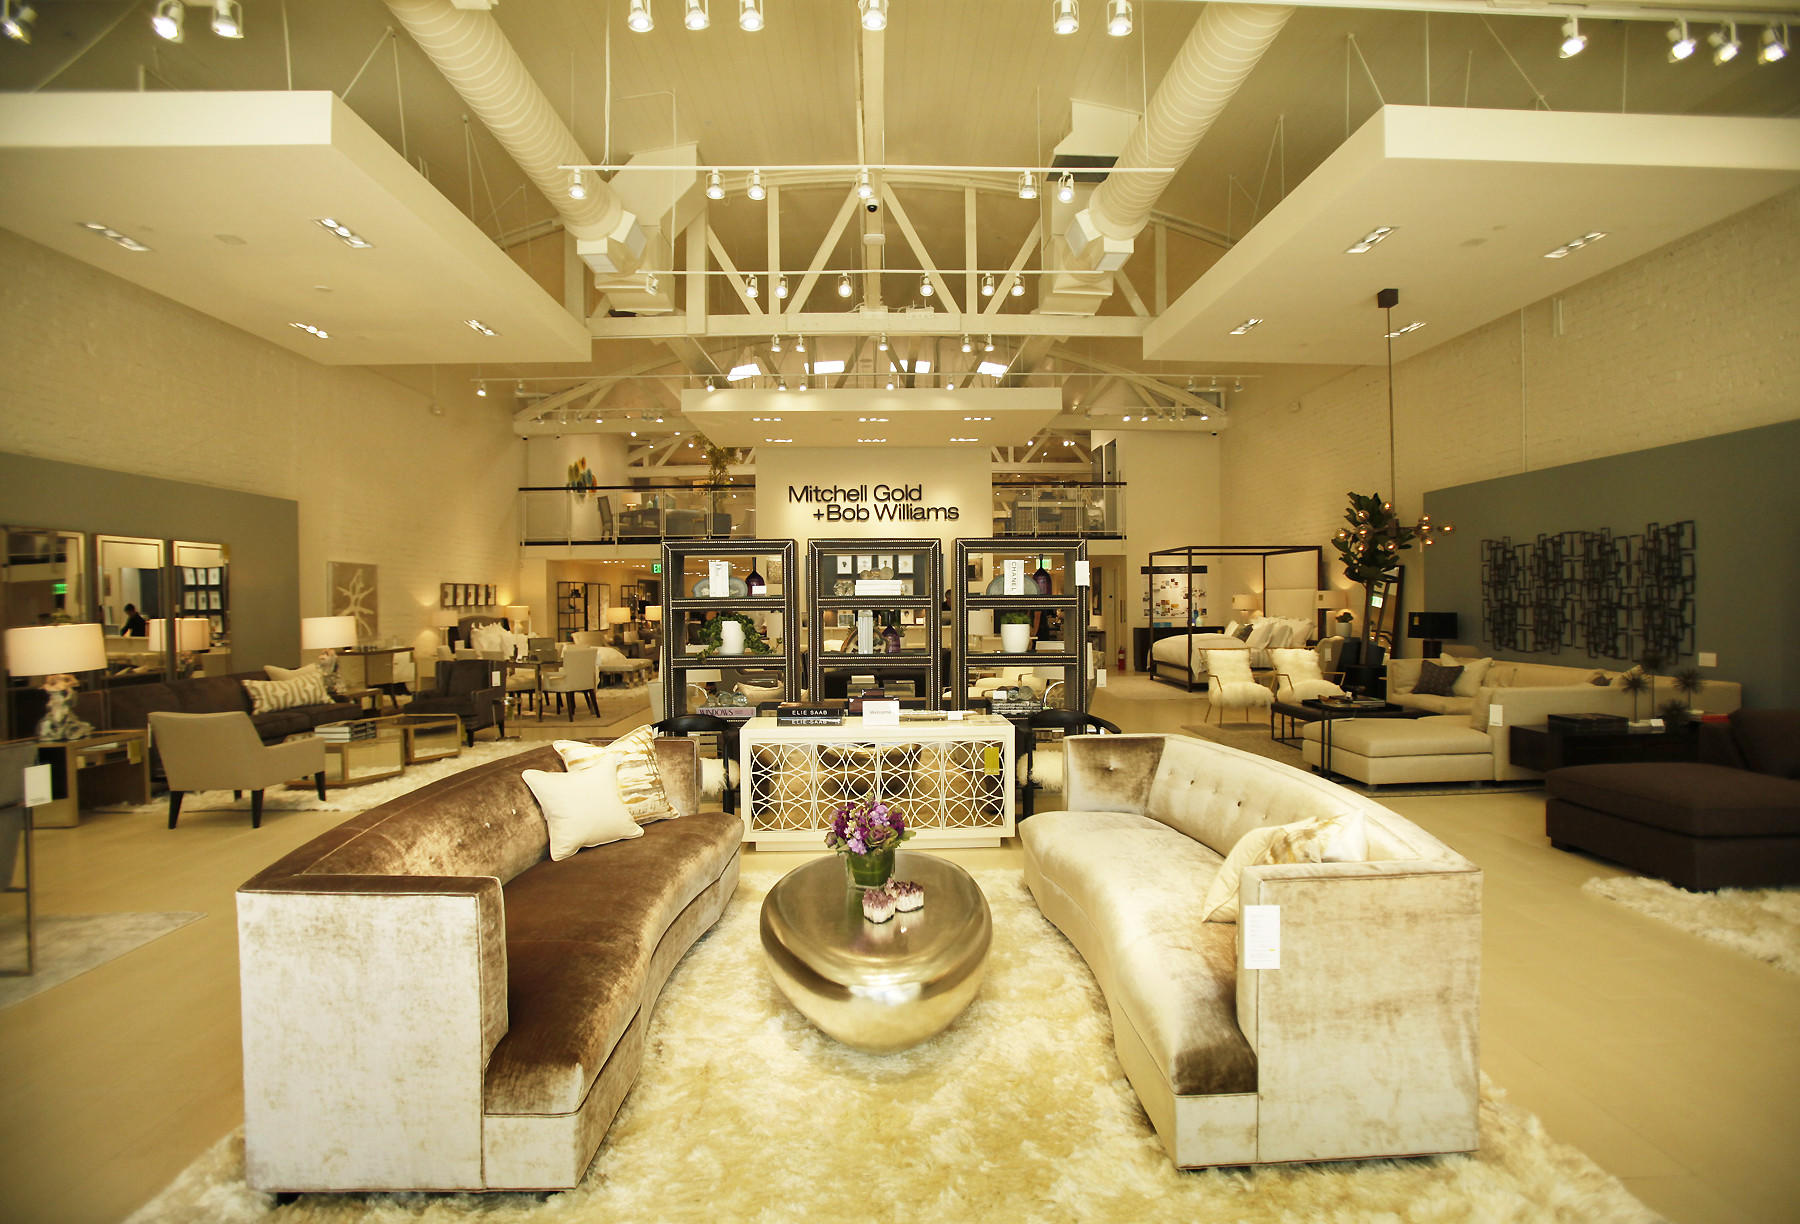 pottery barn windsor chair revolving dining mitchell gold + bob williams showroom opens in beverly hills - latimes